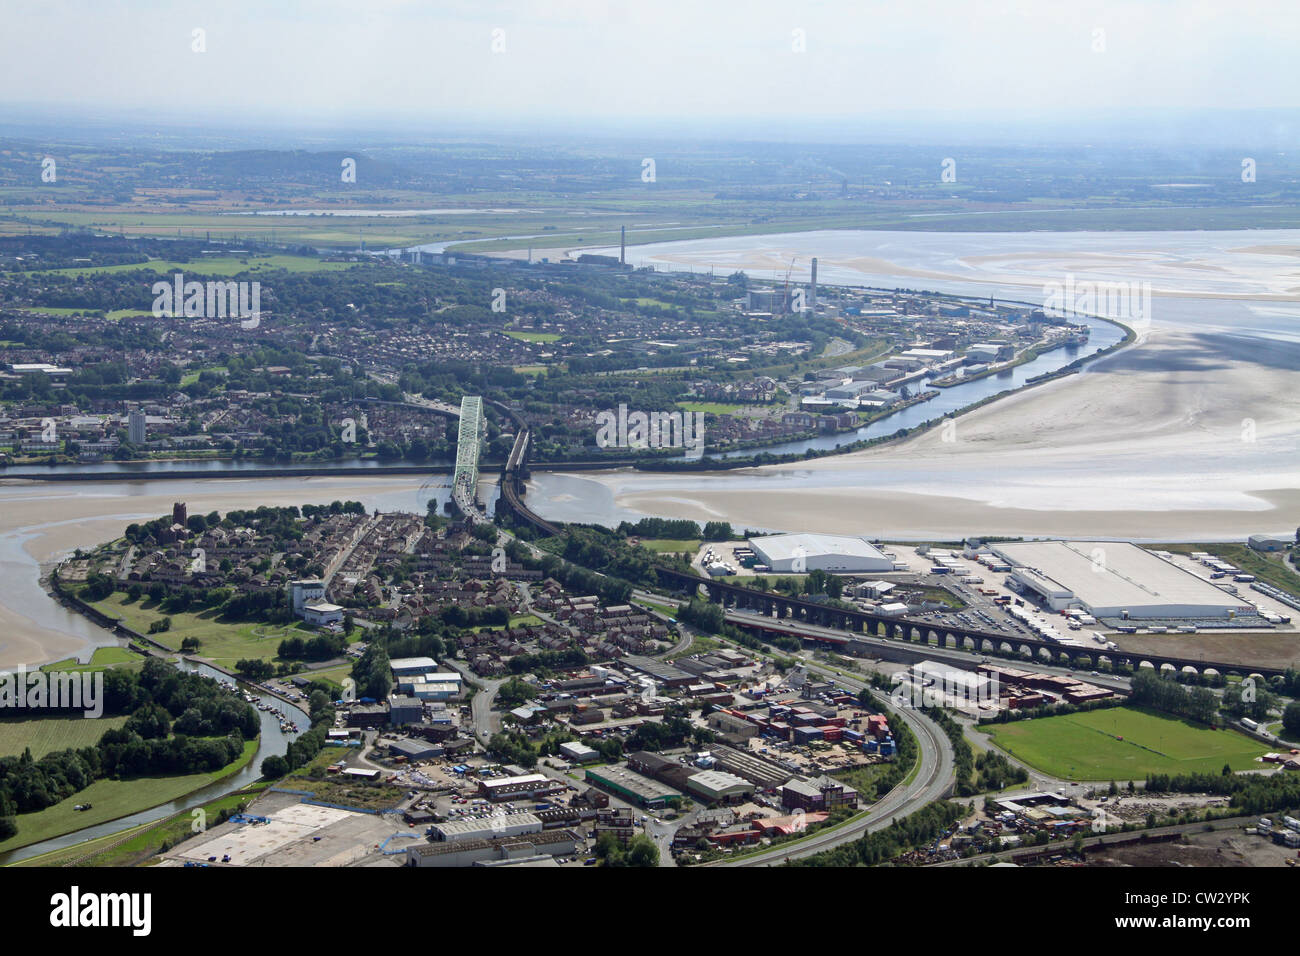 aerial view of Runcorn town from overhead Widnes on the north bank of the River Mersey - Stock Image